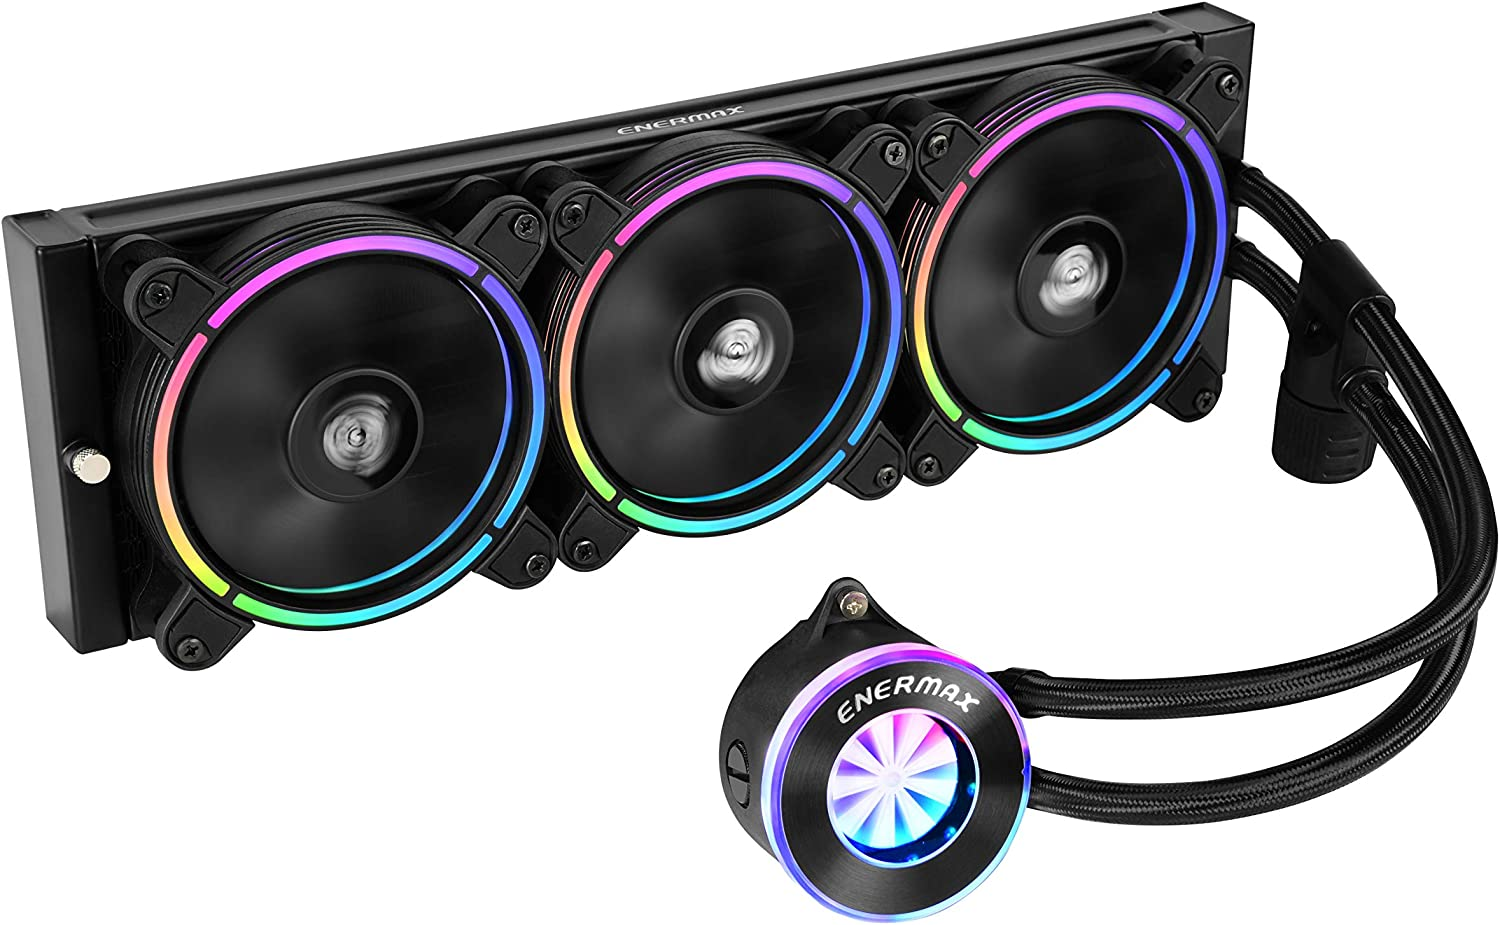 Enermax Liqfusion RGB 360mm Lighting Liquid CPU Cooler T.B. RGB Addressable M/B Sync RGB Fan, Exclusive RGB-Sync Waterblock with Patented Flow Indicator Design, ELC-LF360-RGB